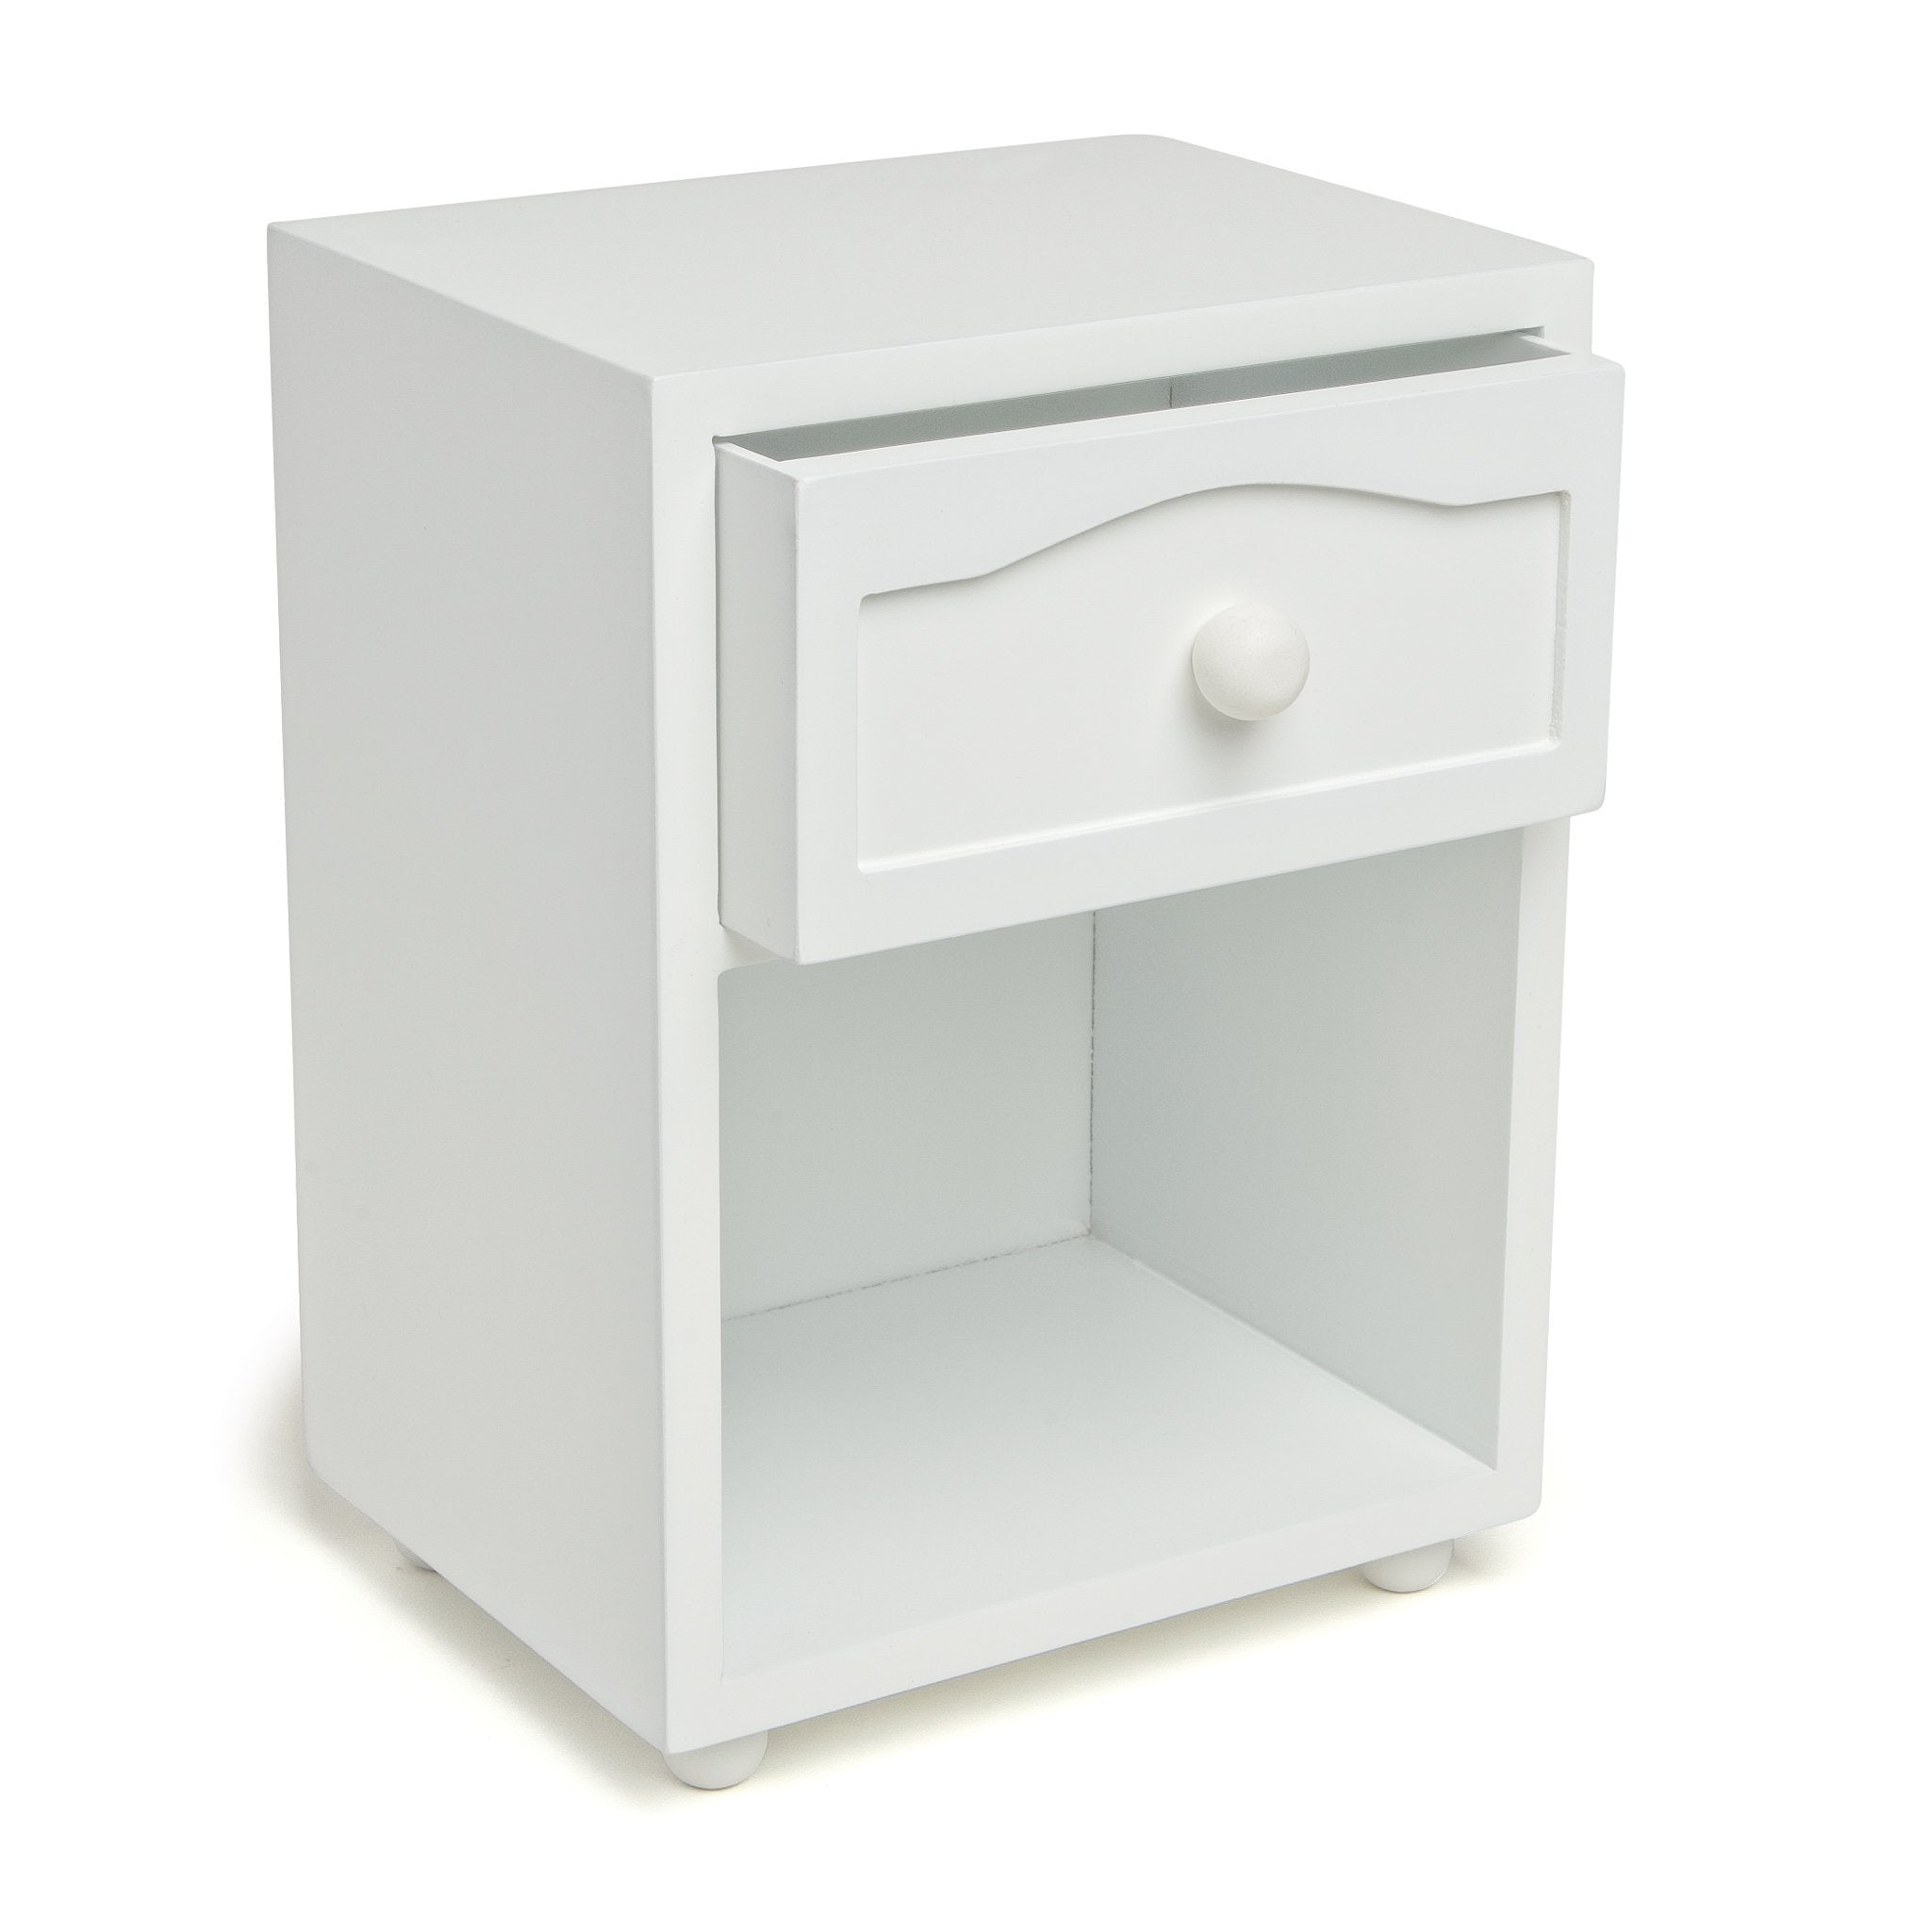 White night table with shelf and drawer for all 18 inch dolls.